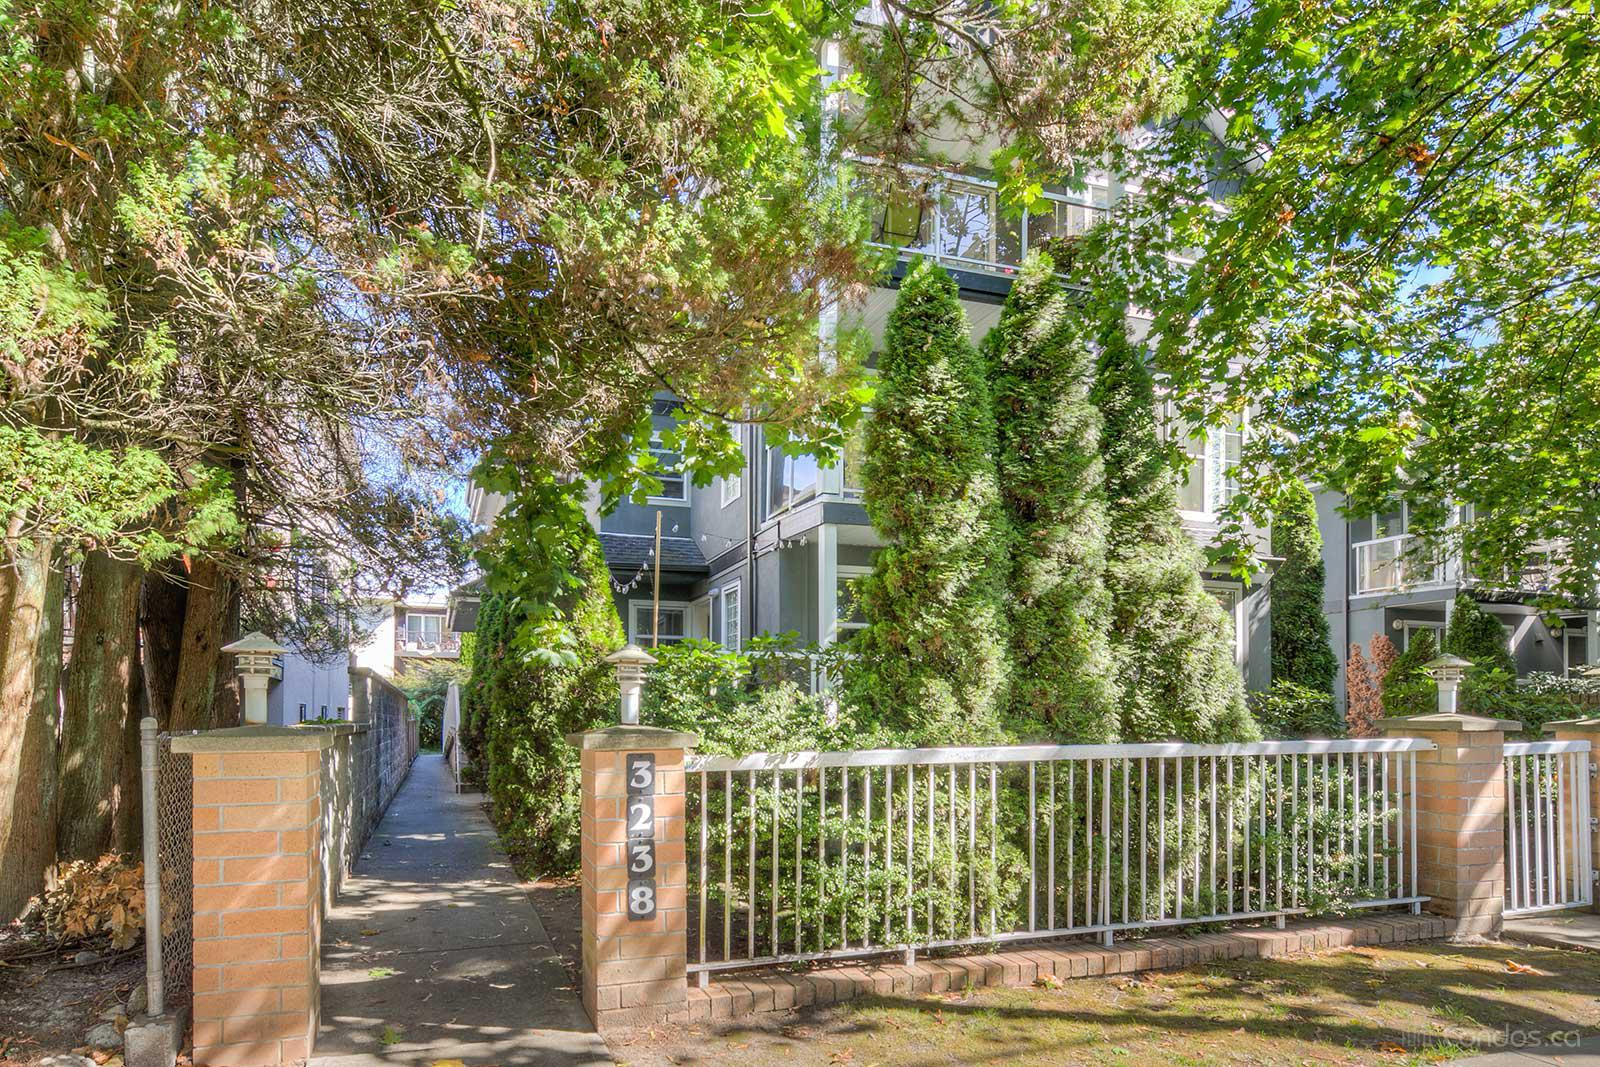 The Maples at 3238 Quebec St, Vancouver 0